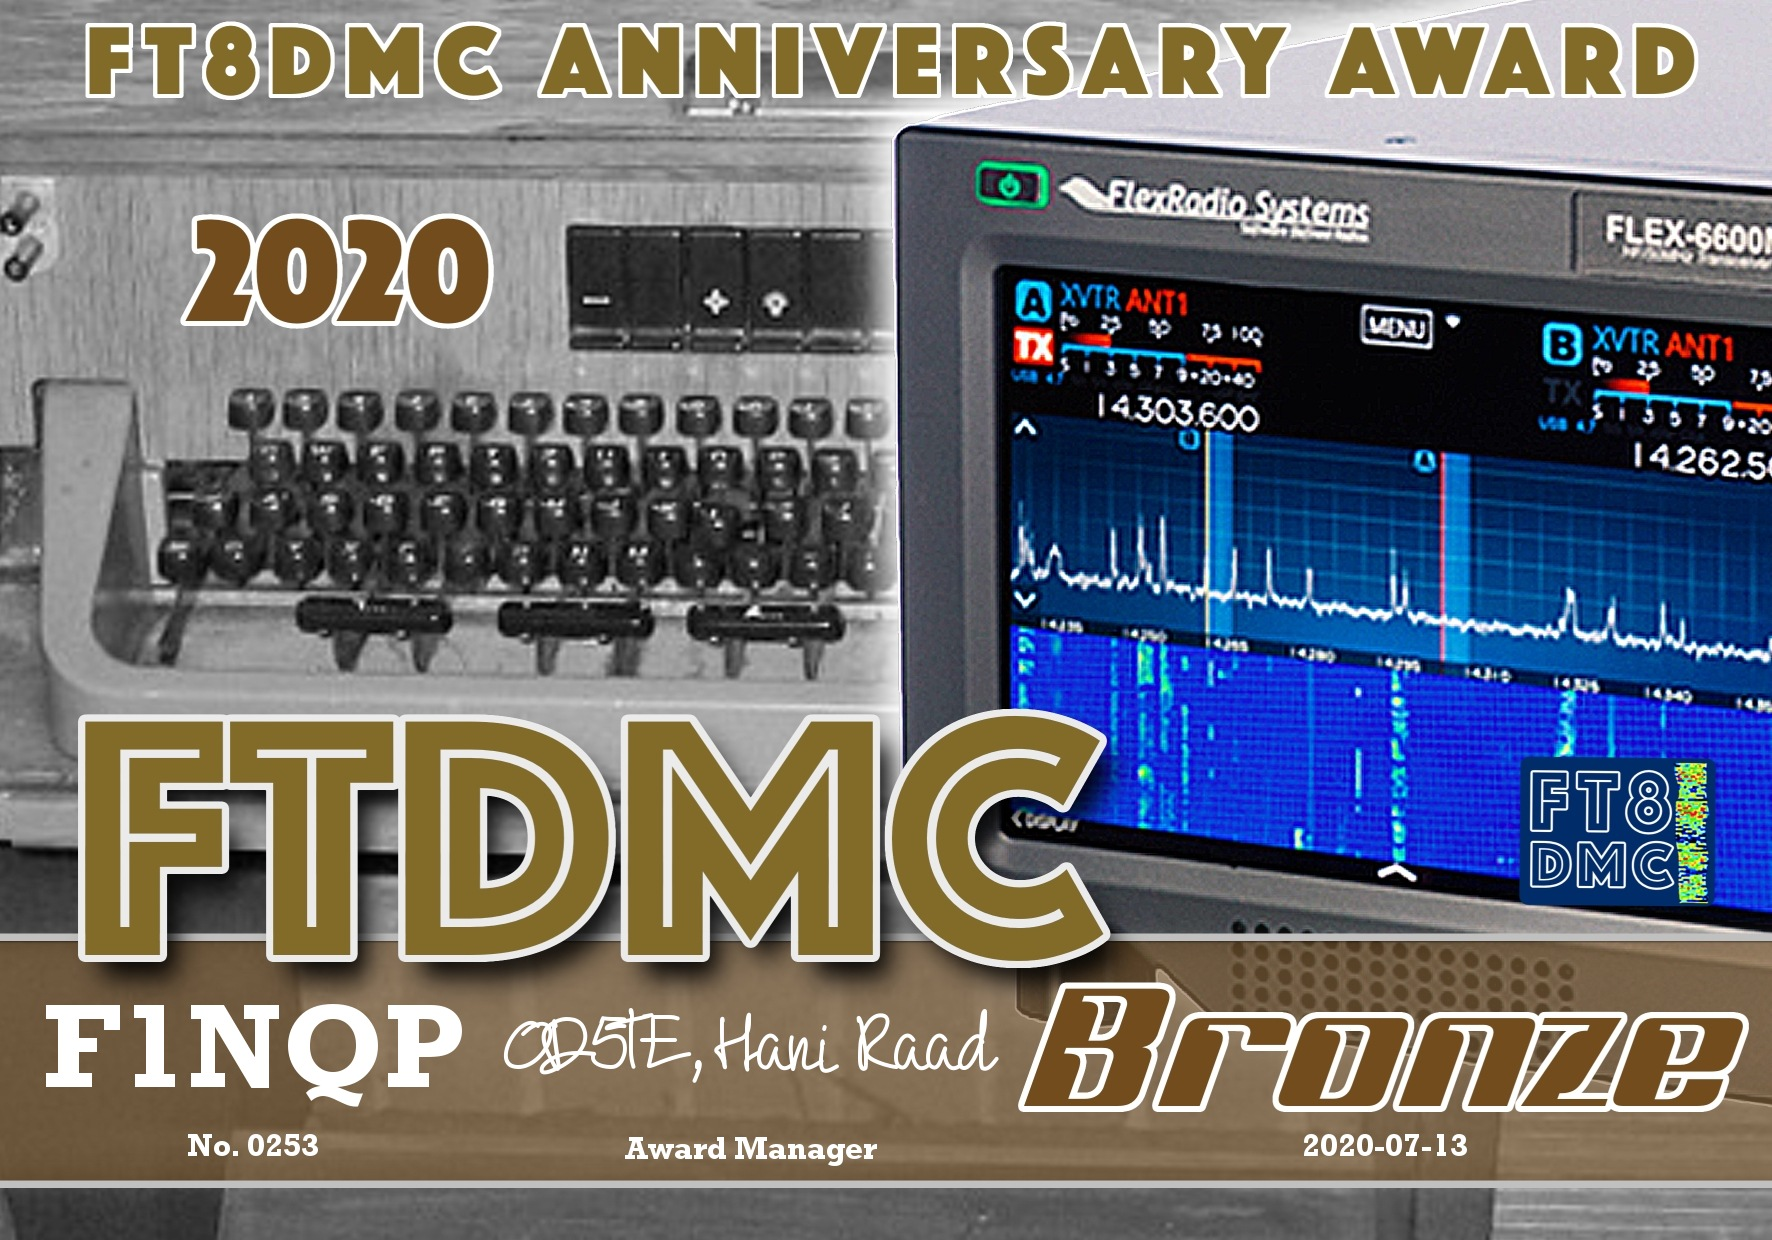 F1NQP-FTDMC_2020-BRONZE_FT8DMC.jpg